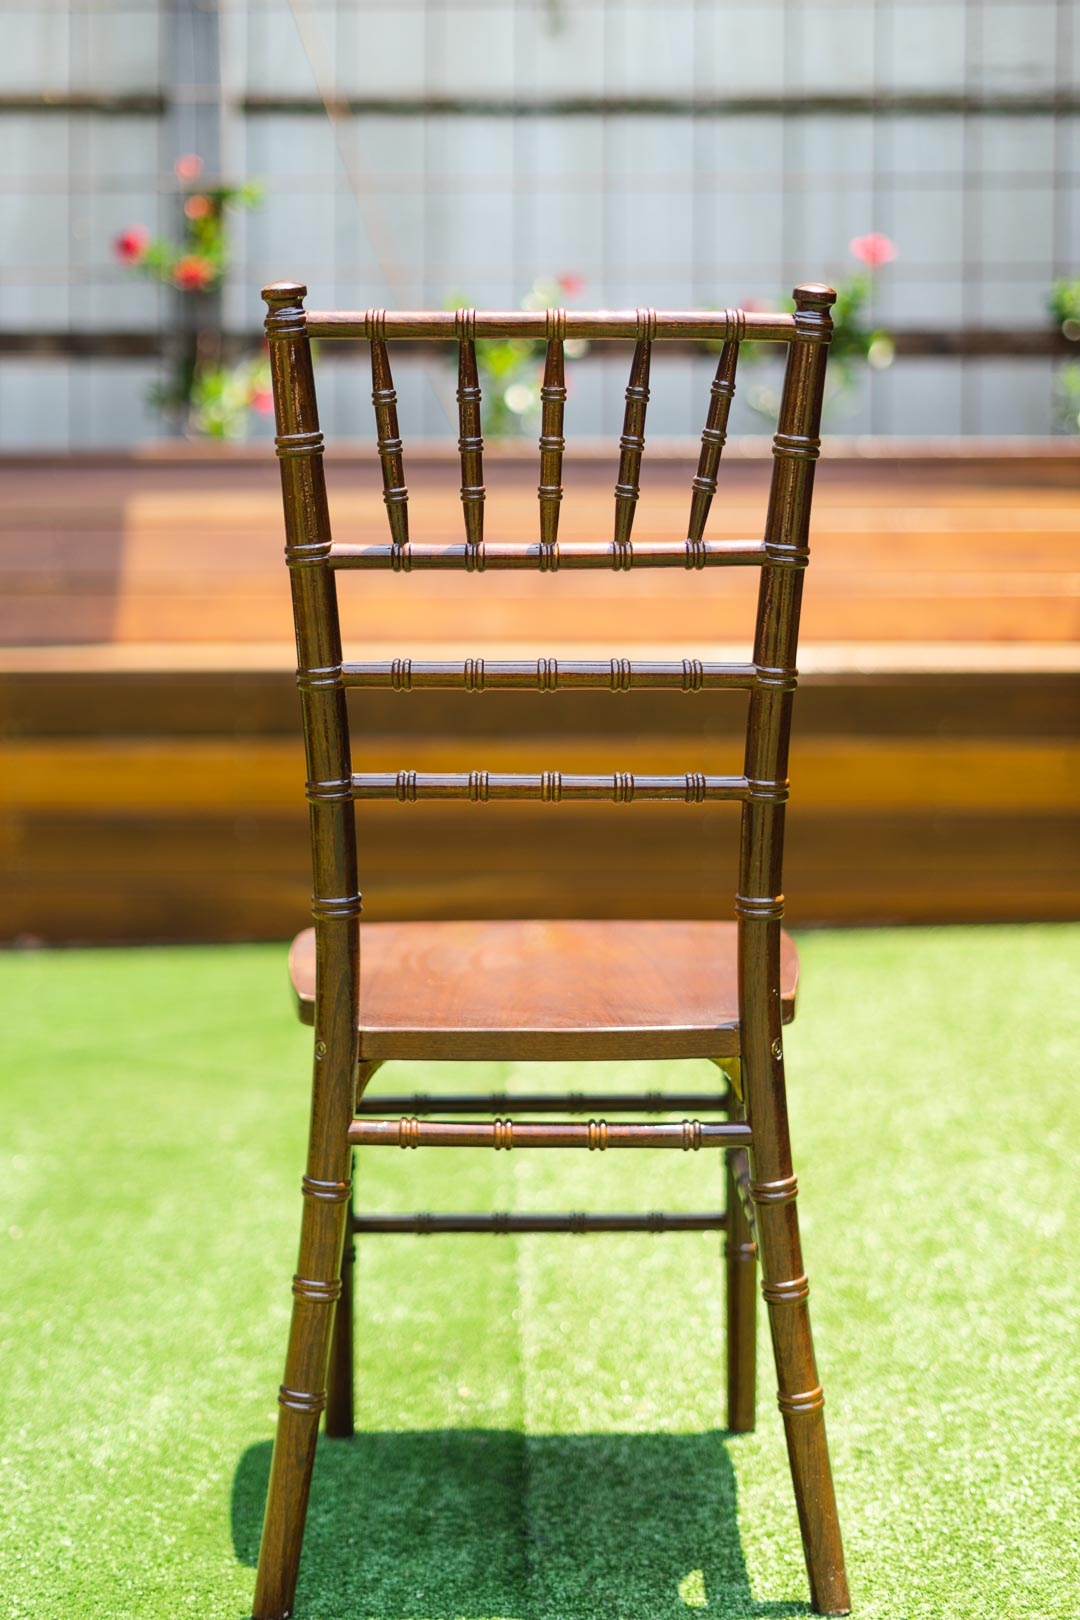 Walnut Tiffany Chair | Timber 6 per box @ $65 each